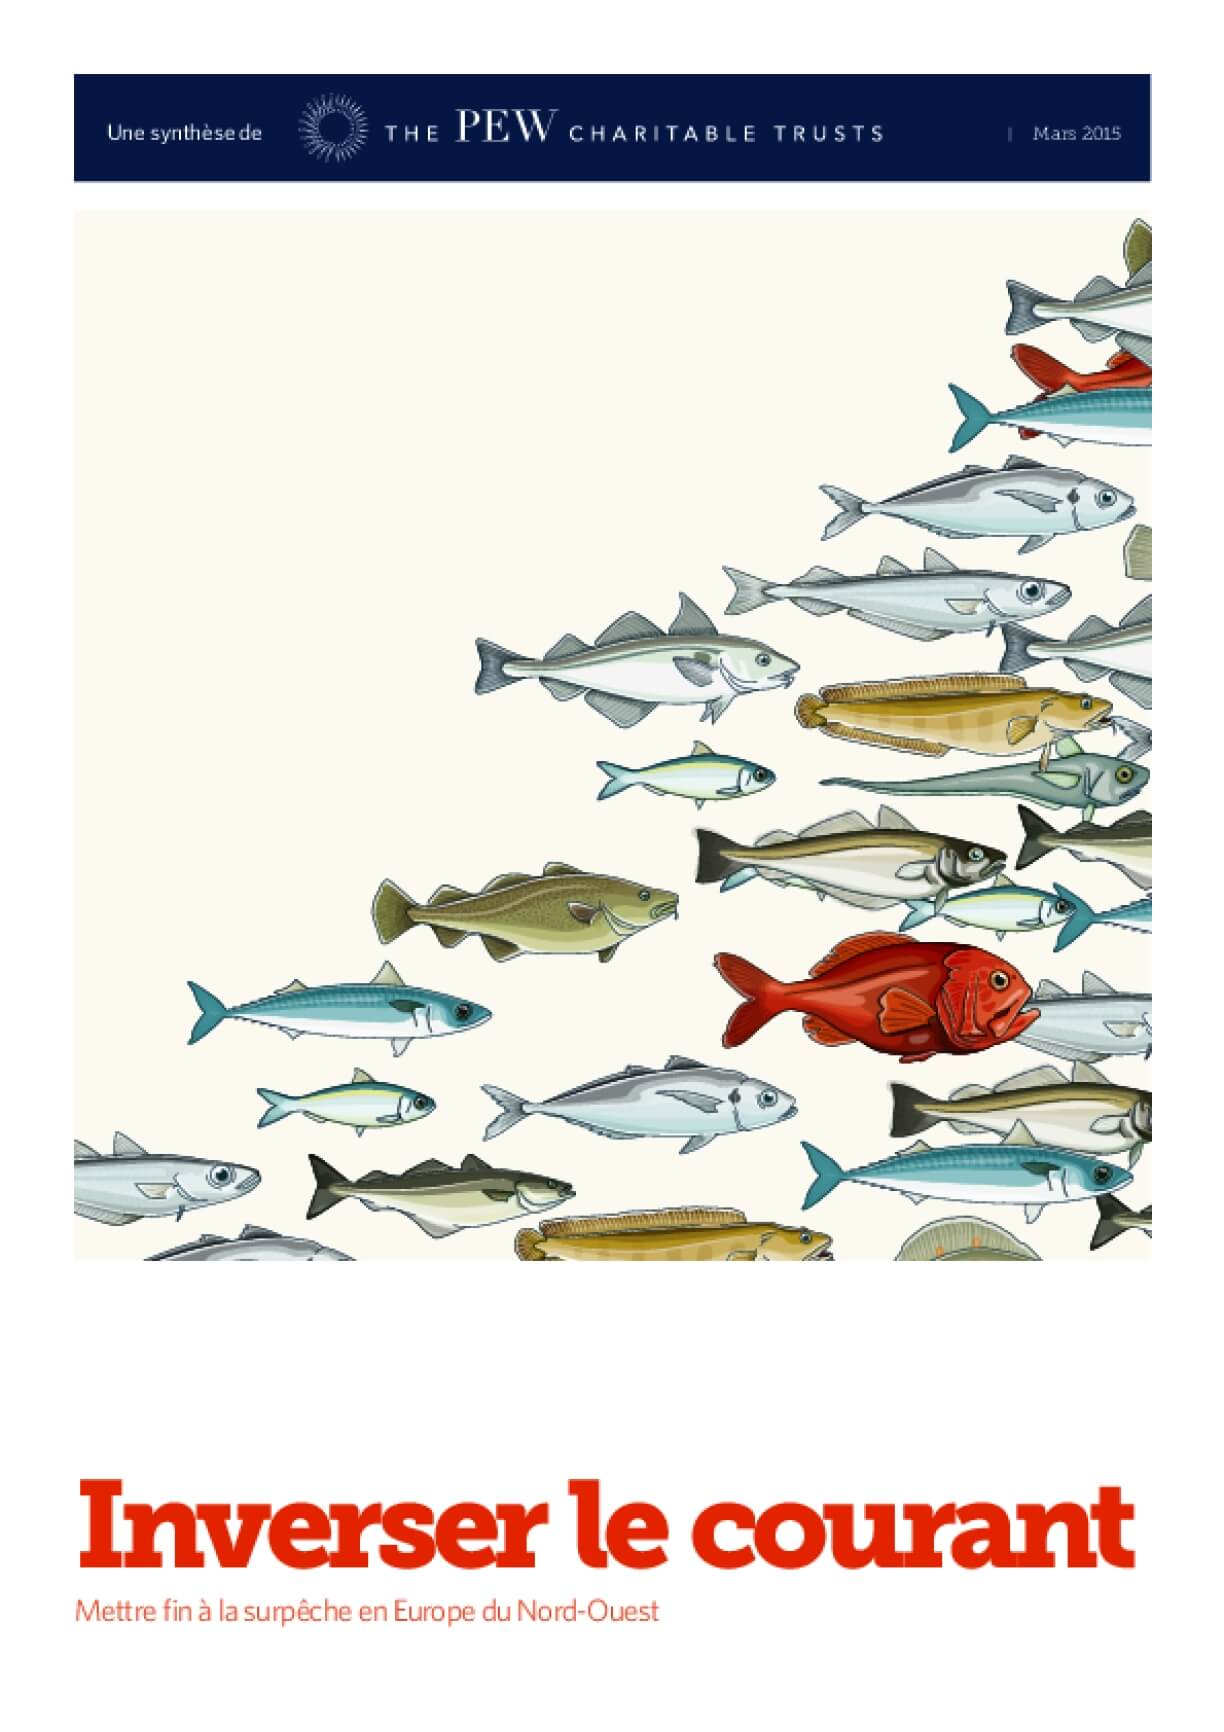 Turning the Tide  Ending Overfishing in North-western Europe (French Overview)